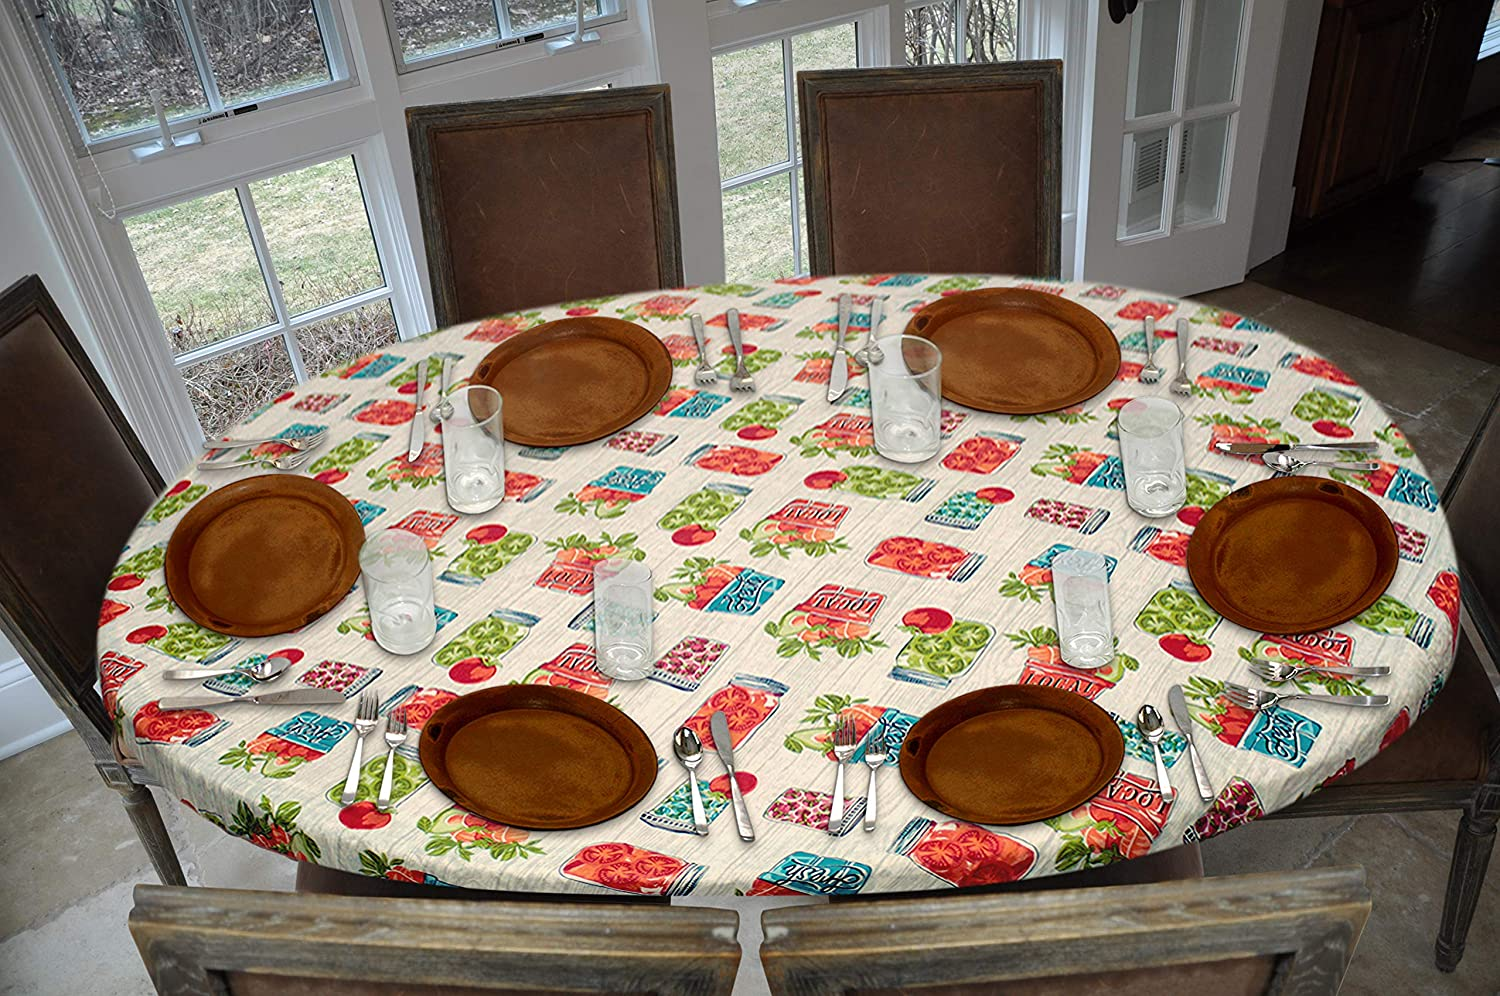 """Covers For The Home Deluxe Elastic Edged Flannel Backed Vinyl Fitted Table Cover - Garden to Table Pattern - Oblong/Oval - Fits Tables up to 48"""" W x 68"""" L"""